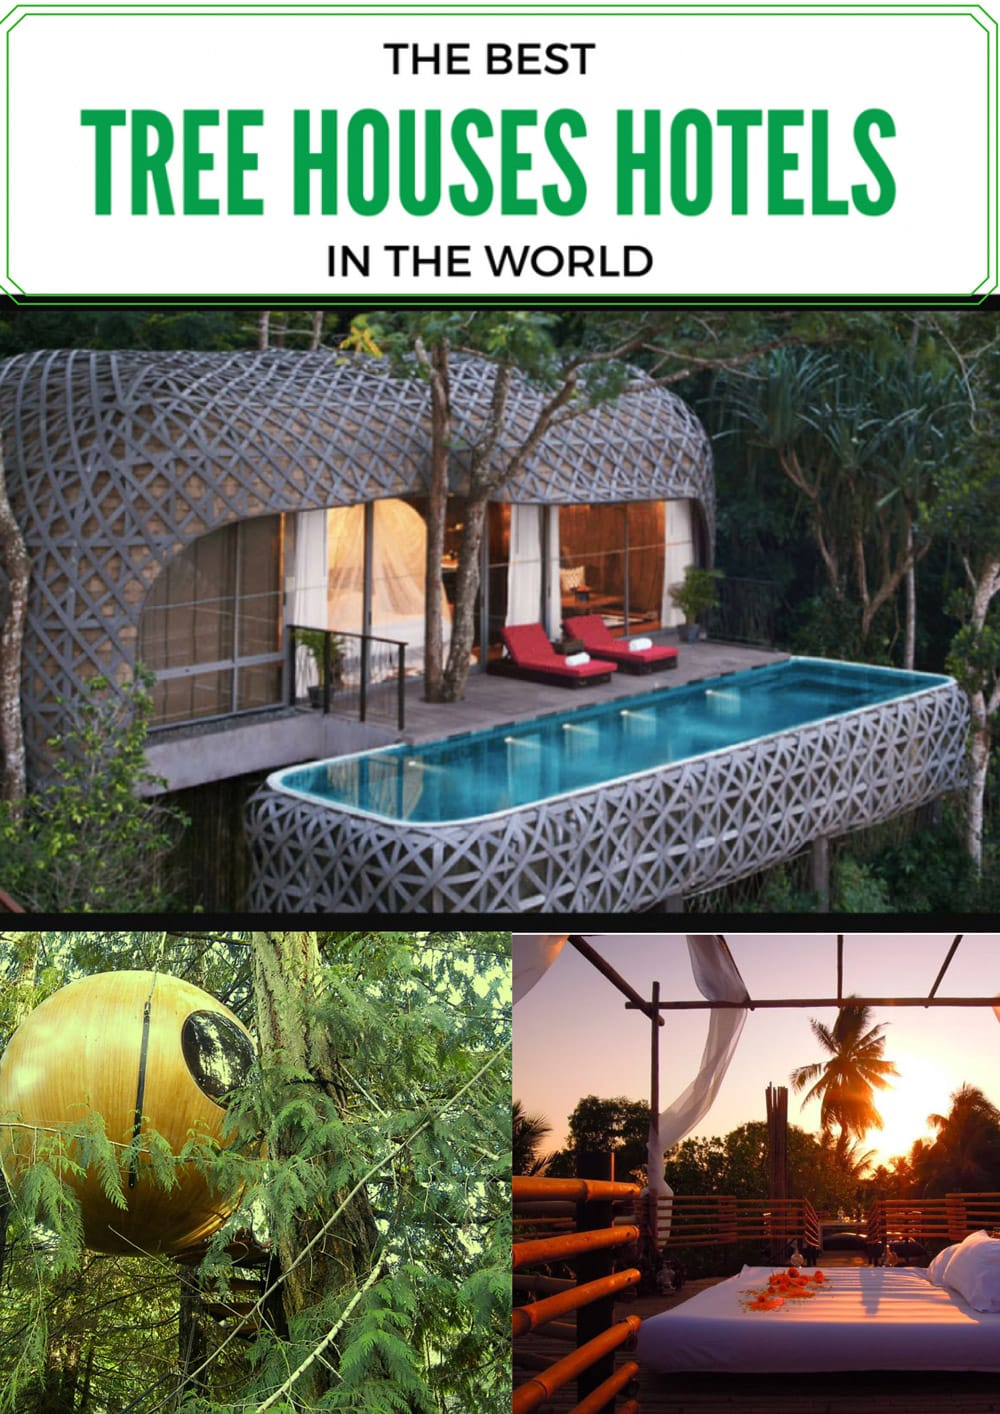 Best-top_tree_houses-hotels_In_the_world_collage